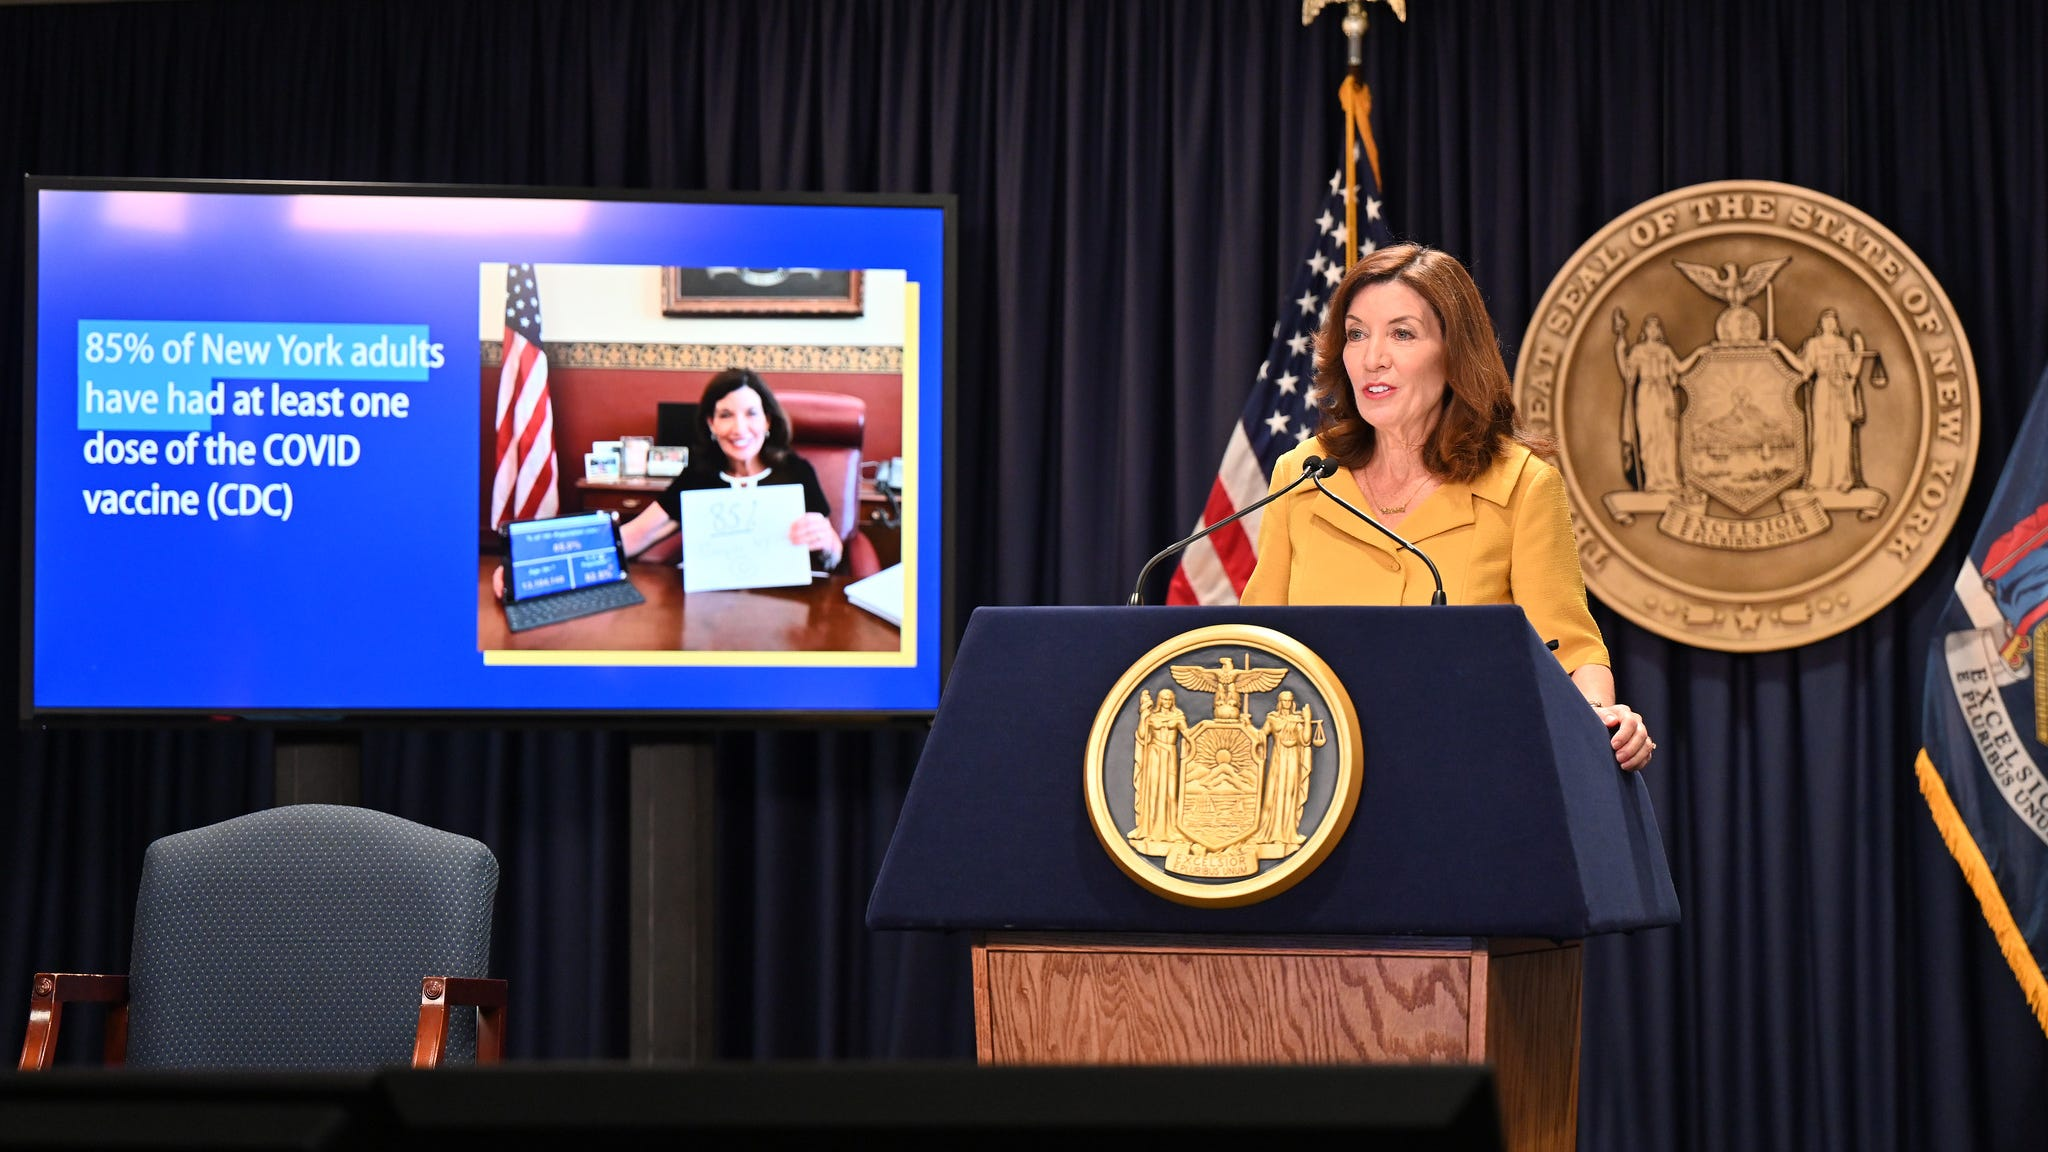 NY's healthcare workforce dropped 3% after vaccine mandates: Hochul